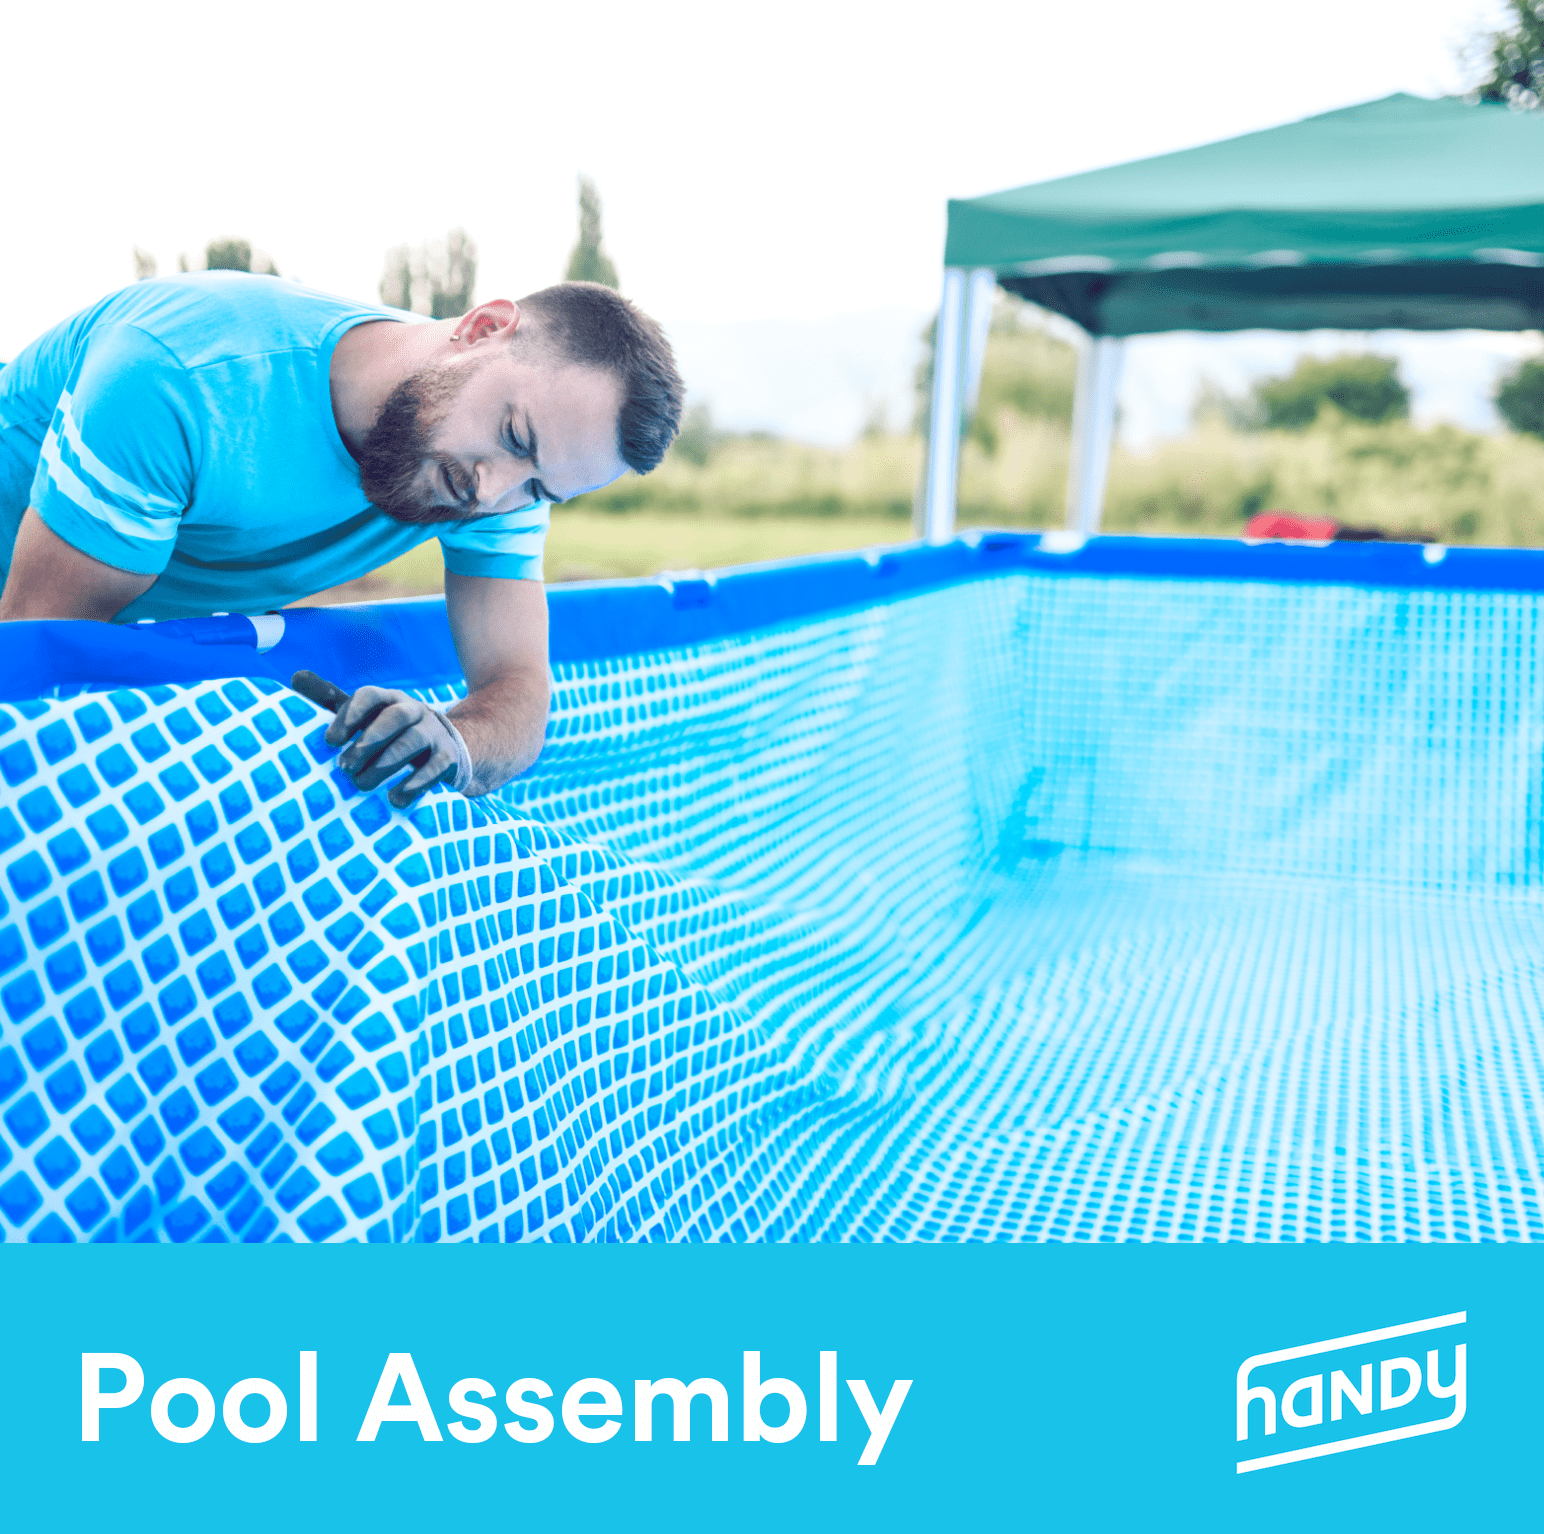 Above Ground Pool Assembly 16 18 By Handy Walmart Com Walmart Com